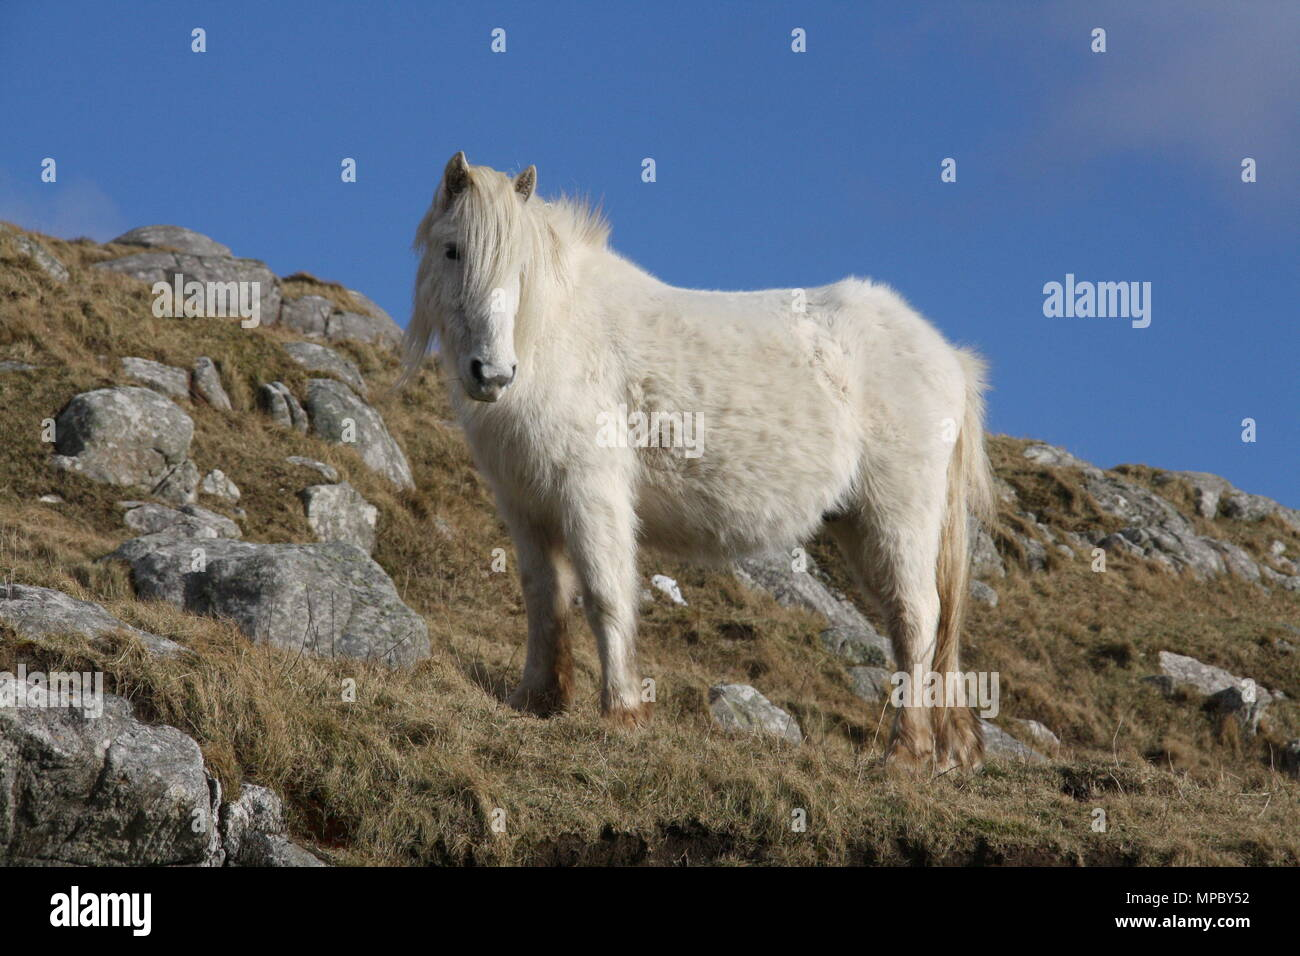 A wild Eriskay pony roams the hillsides of Eriskay, South Uist, Outer Hebrides. - Stock Image